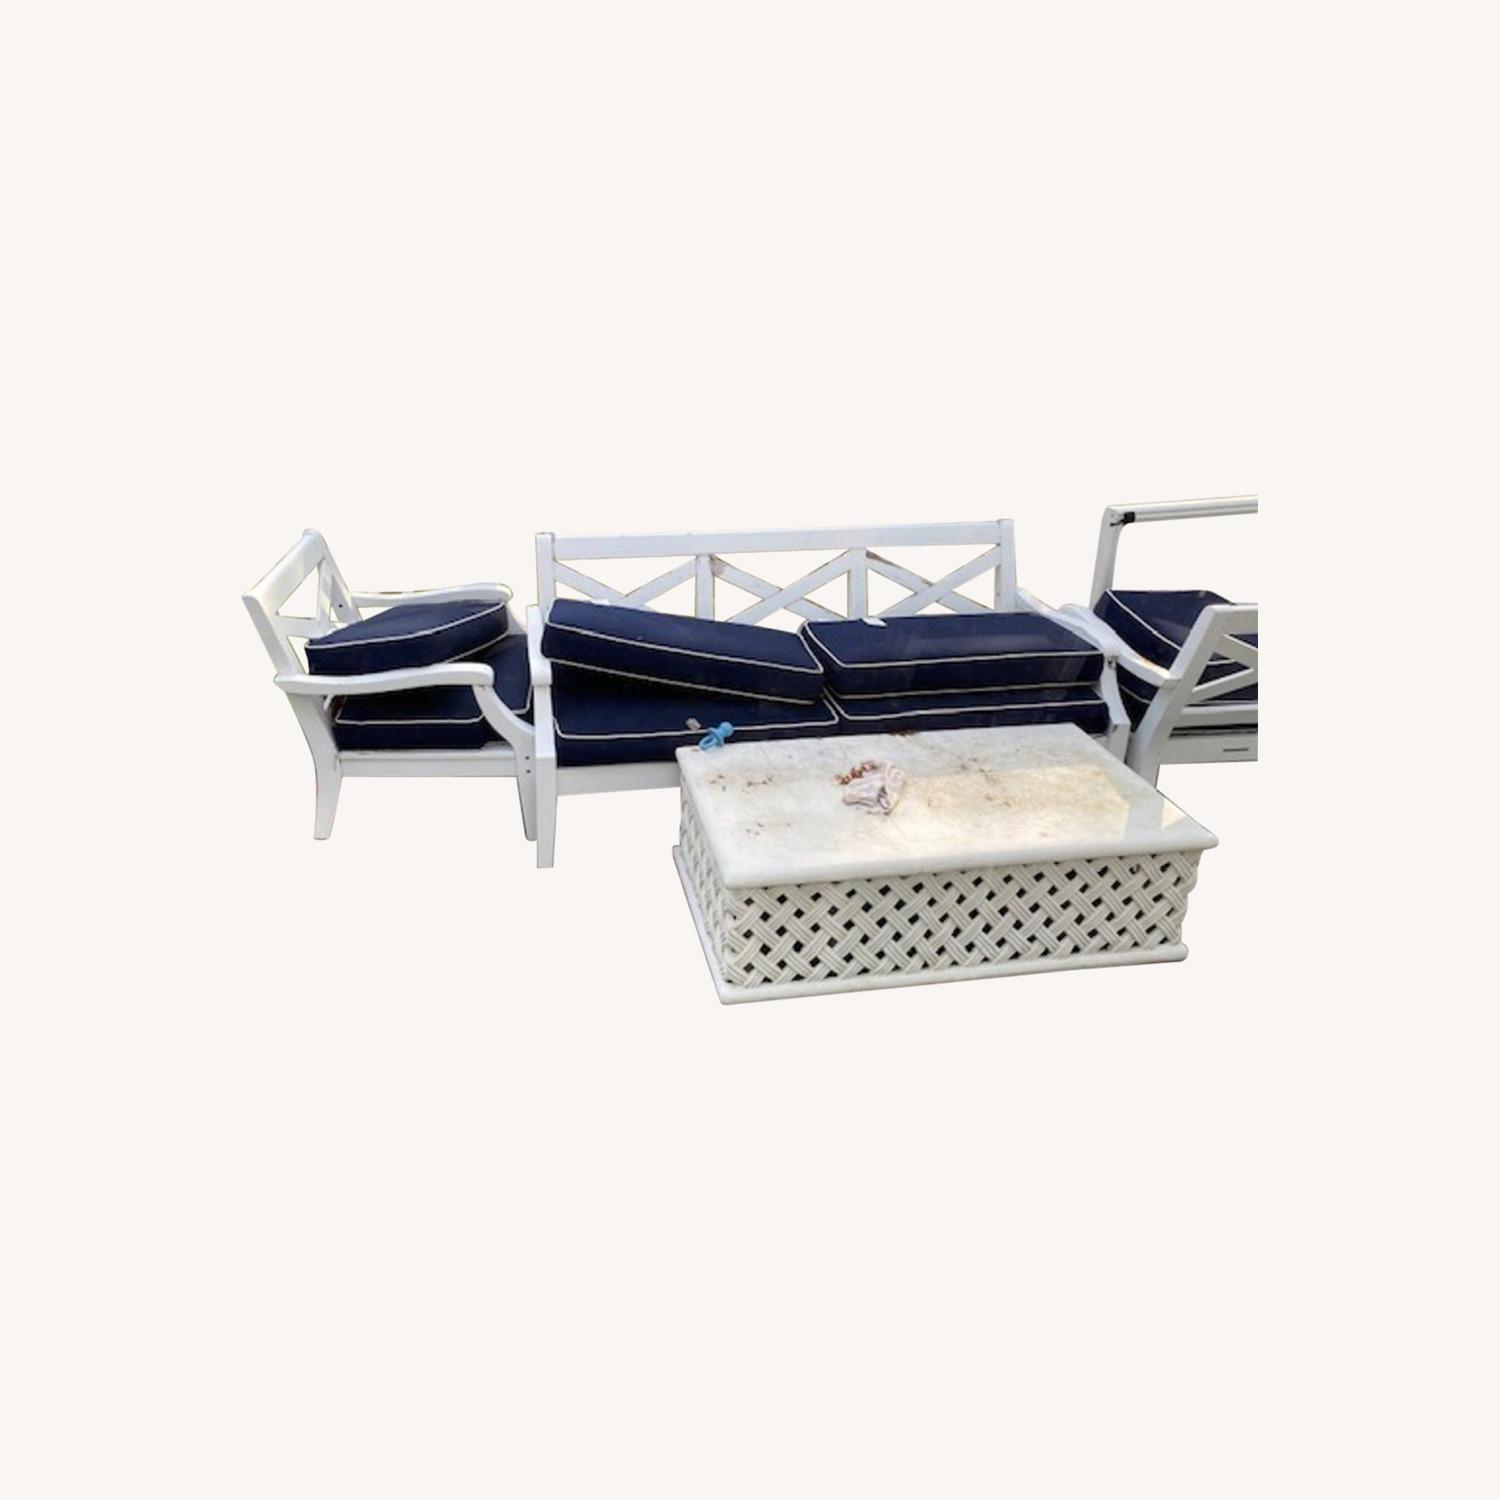 Pottery Barn Outdoor Furniture - image-0